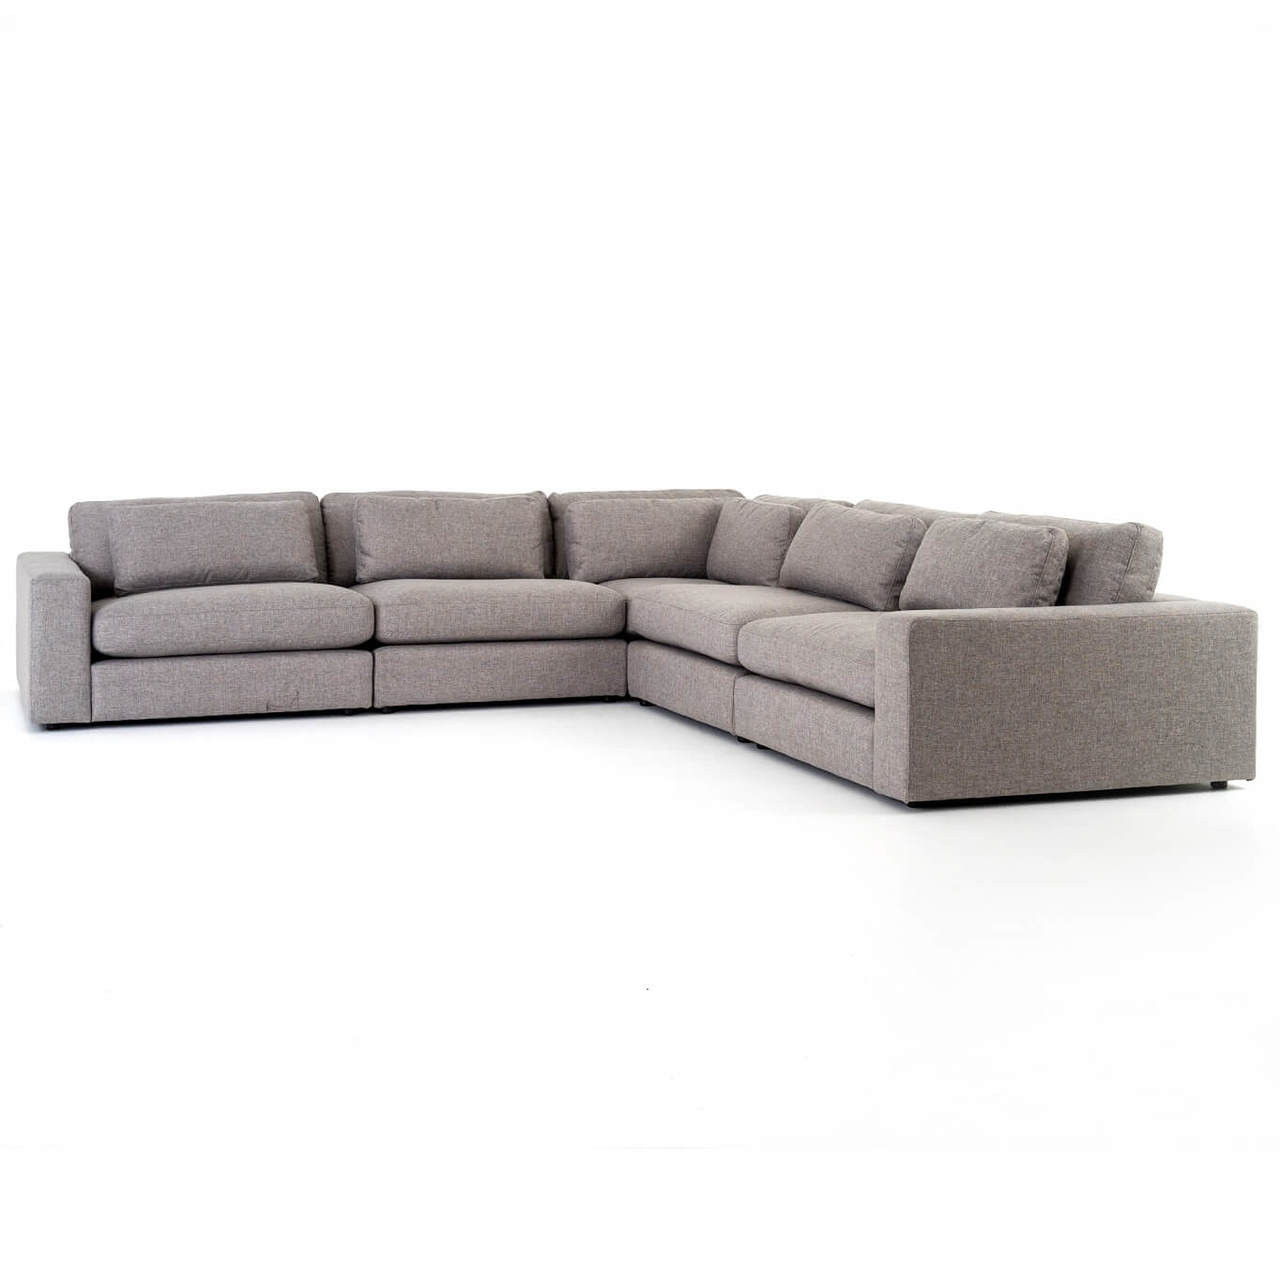 Bloor Contemporary Gray 5 Piece Corner Sectional Sofas 131 Zin Home